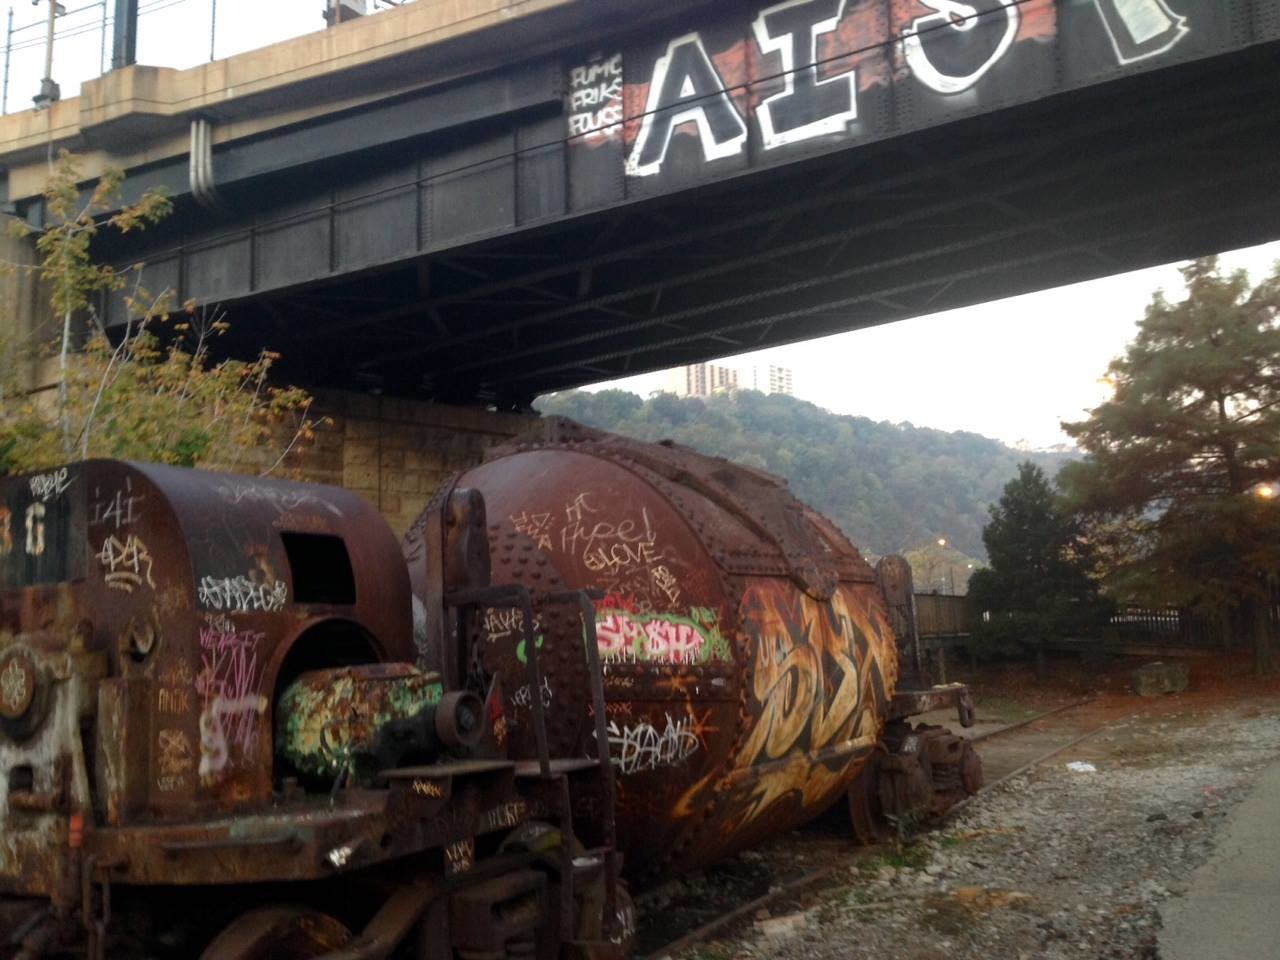 Rusty train cars sit idle on abandoned tracks, monuments to Pittsburgh's industrial past.